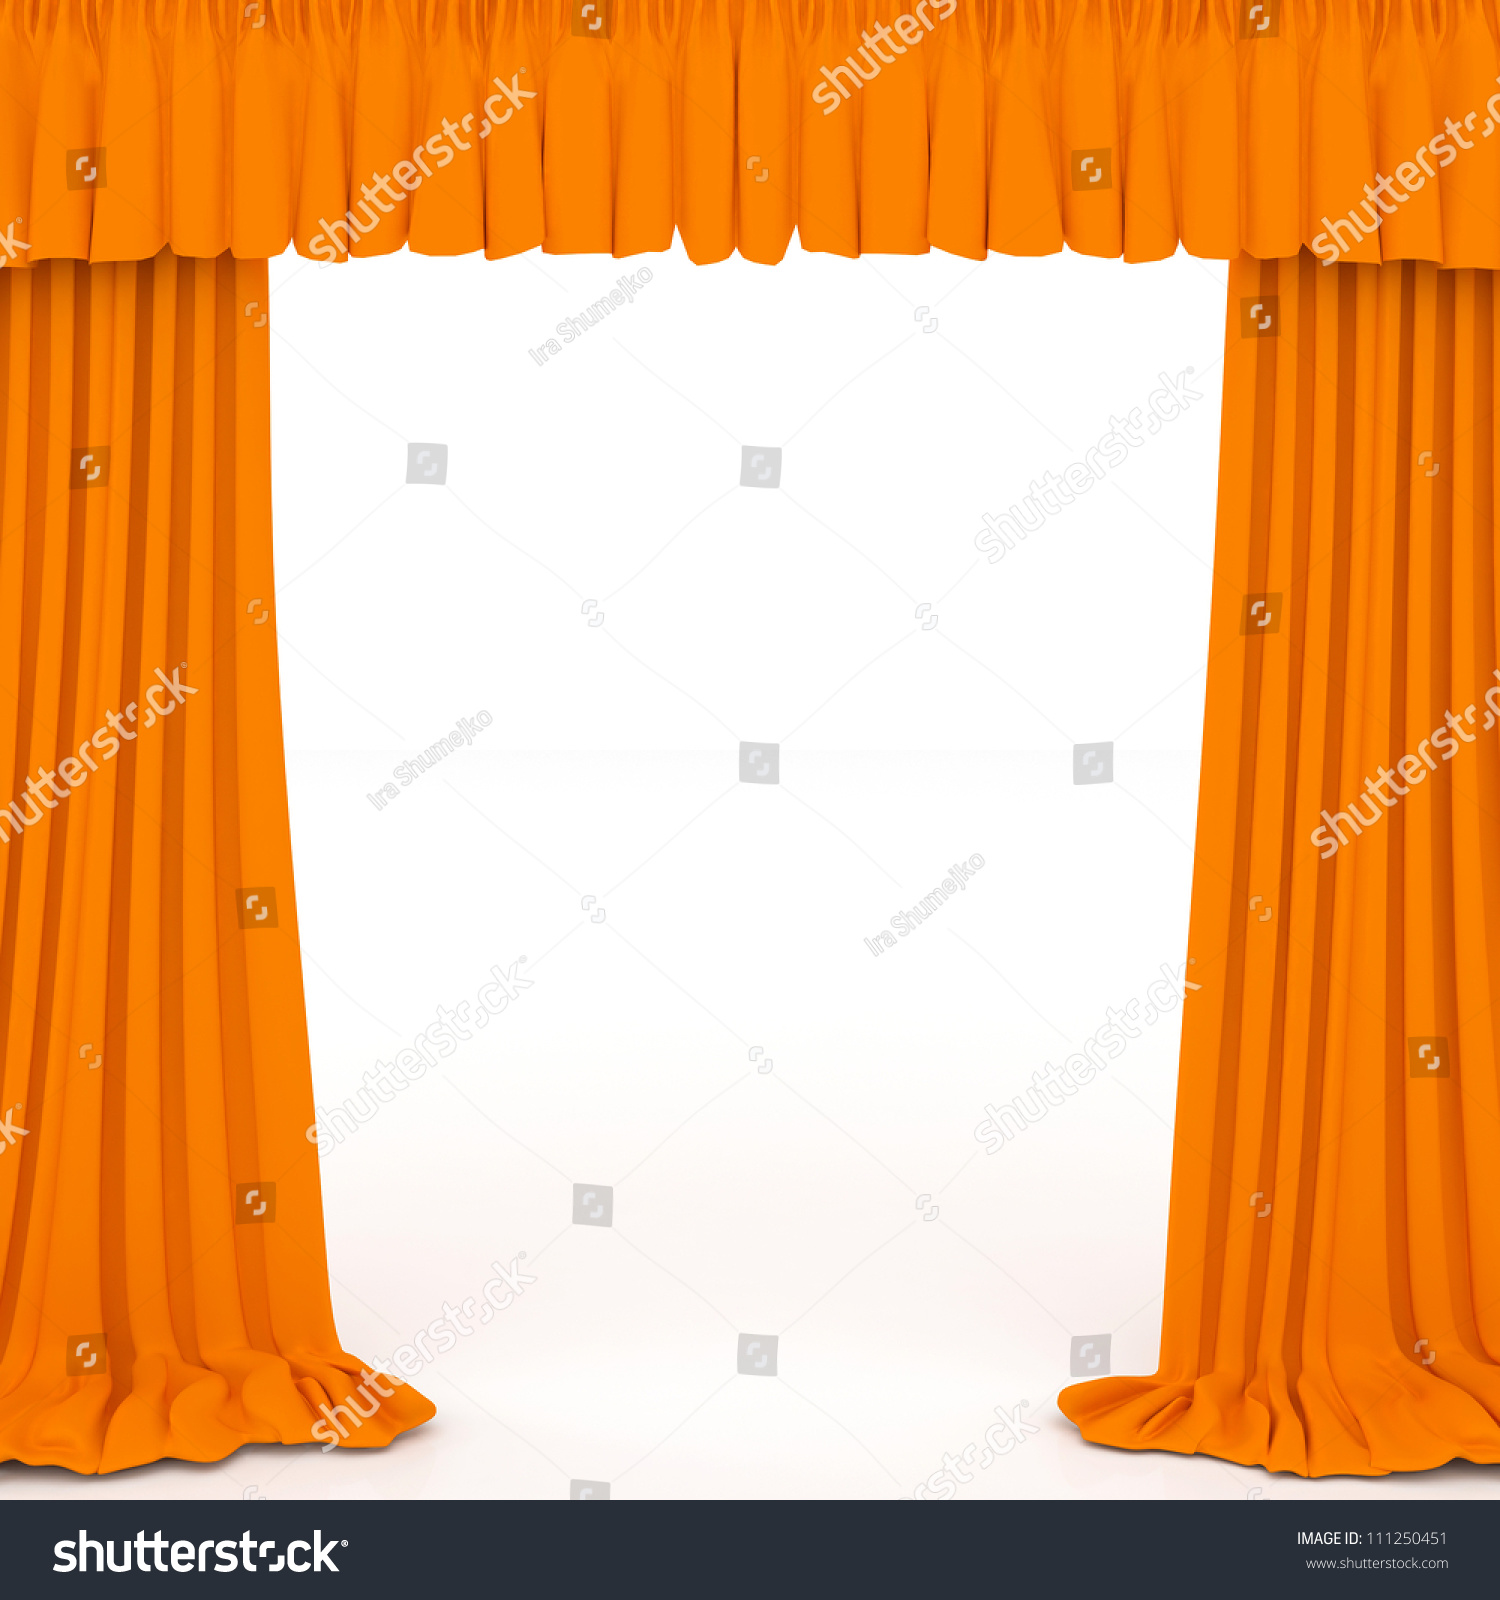 Orange Curtains On The White Background Stock Photo 111250451 Shutterstock